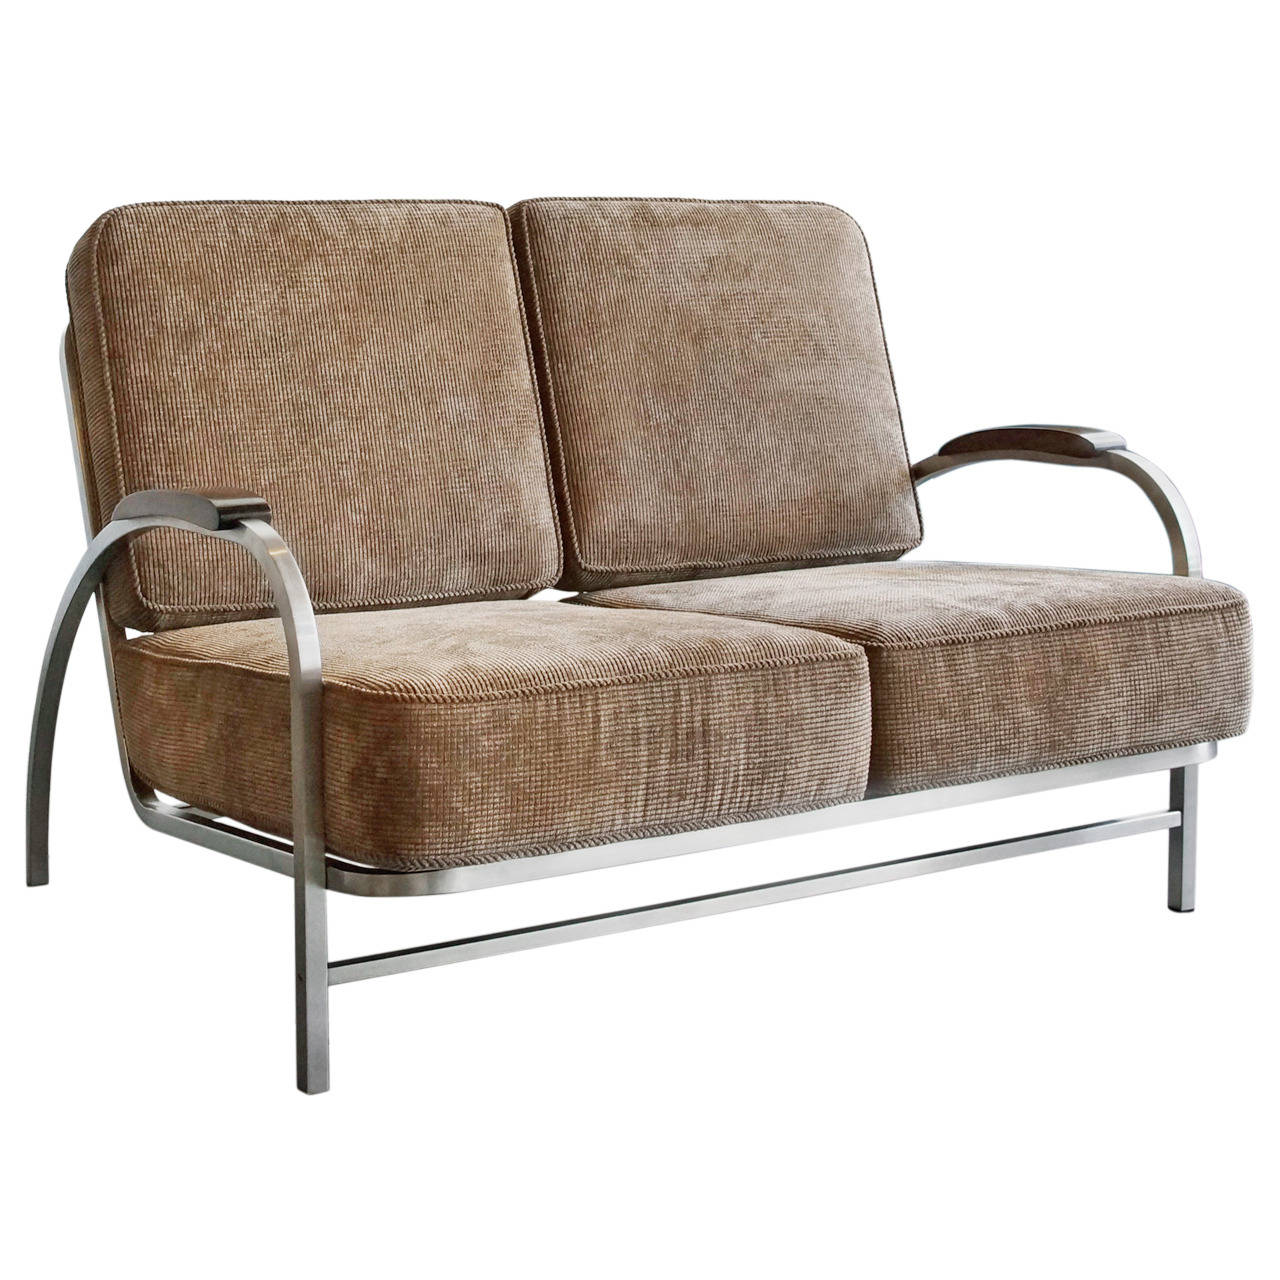 century i mid loveseat san sleeper furniture diego sofa vintage plaid modern retro